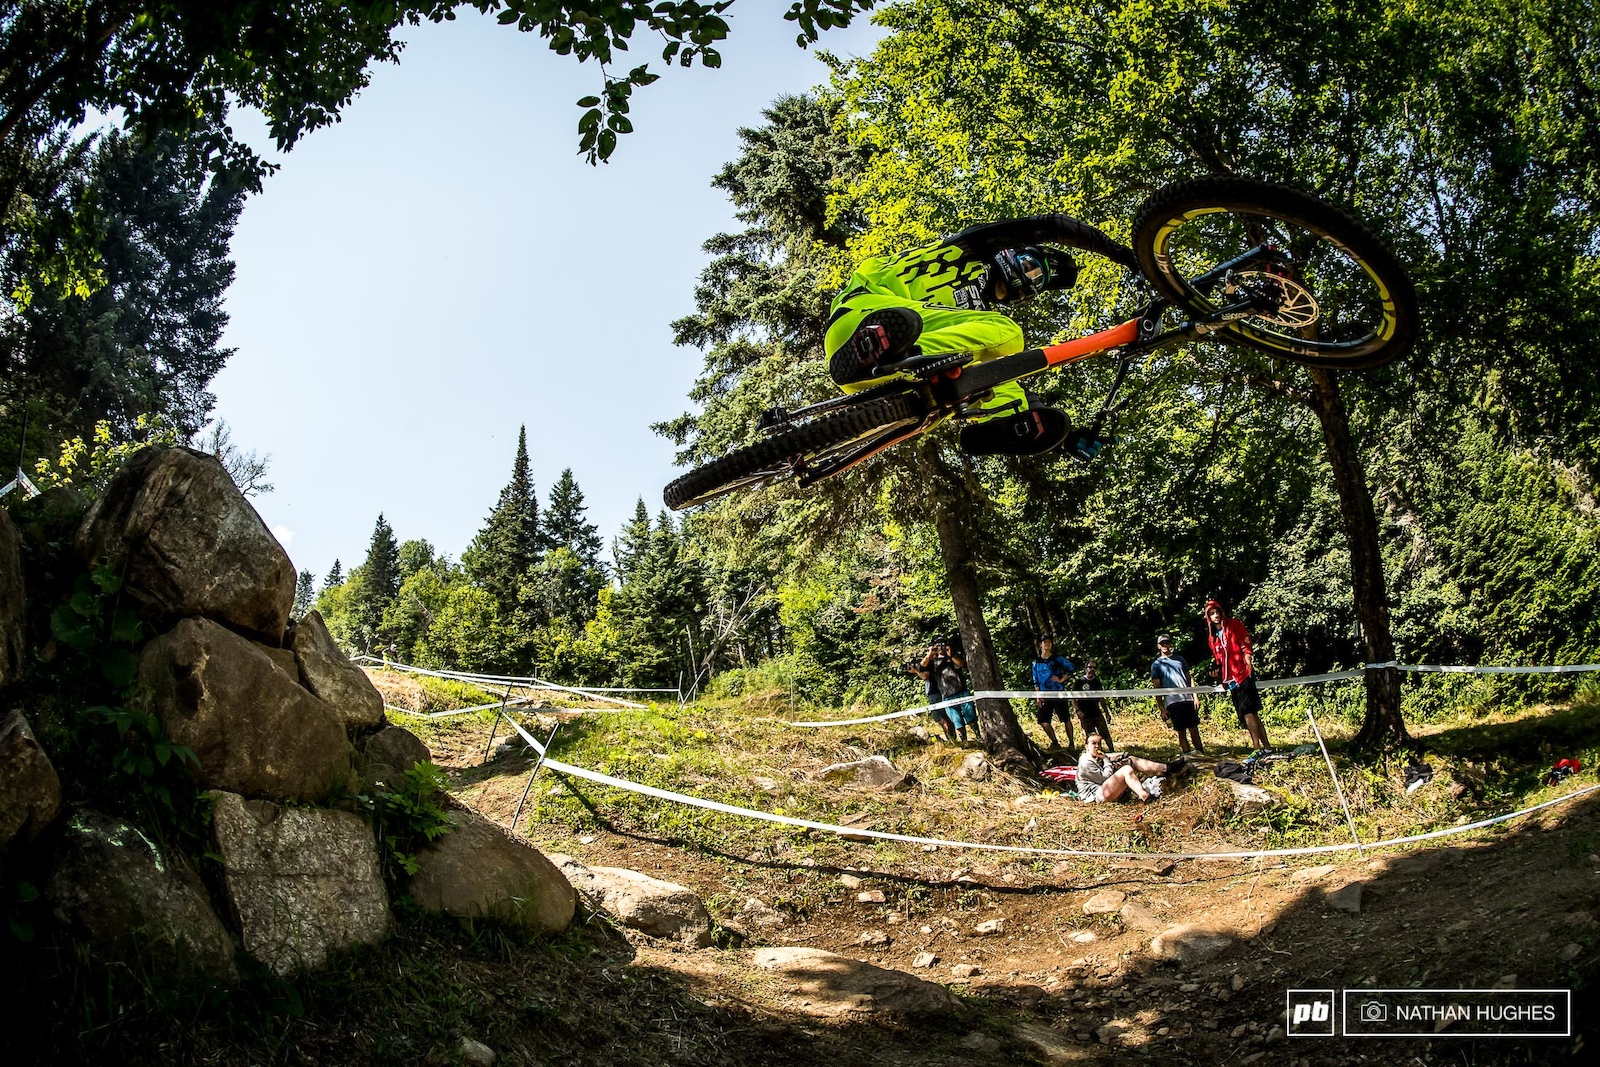 Charlie Harrison airing out the armpits on a sweltering day on the mountain.